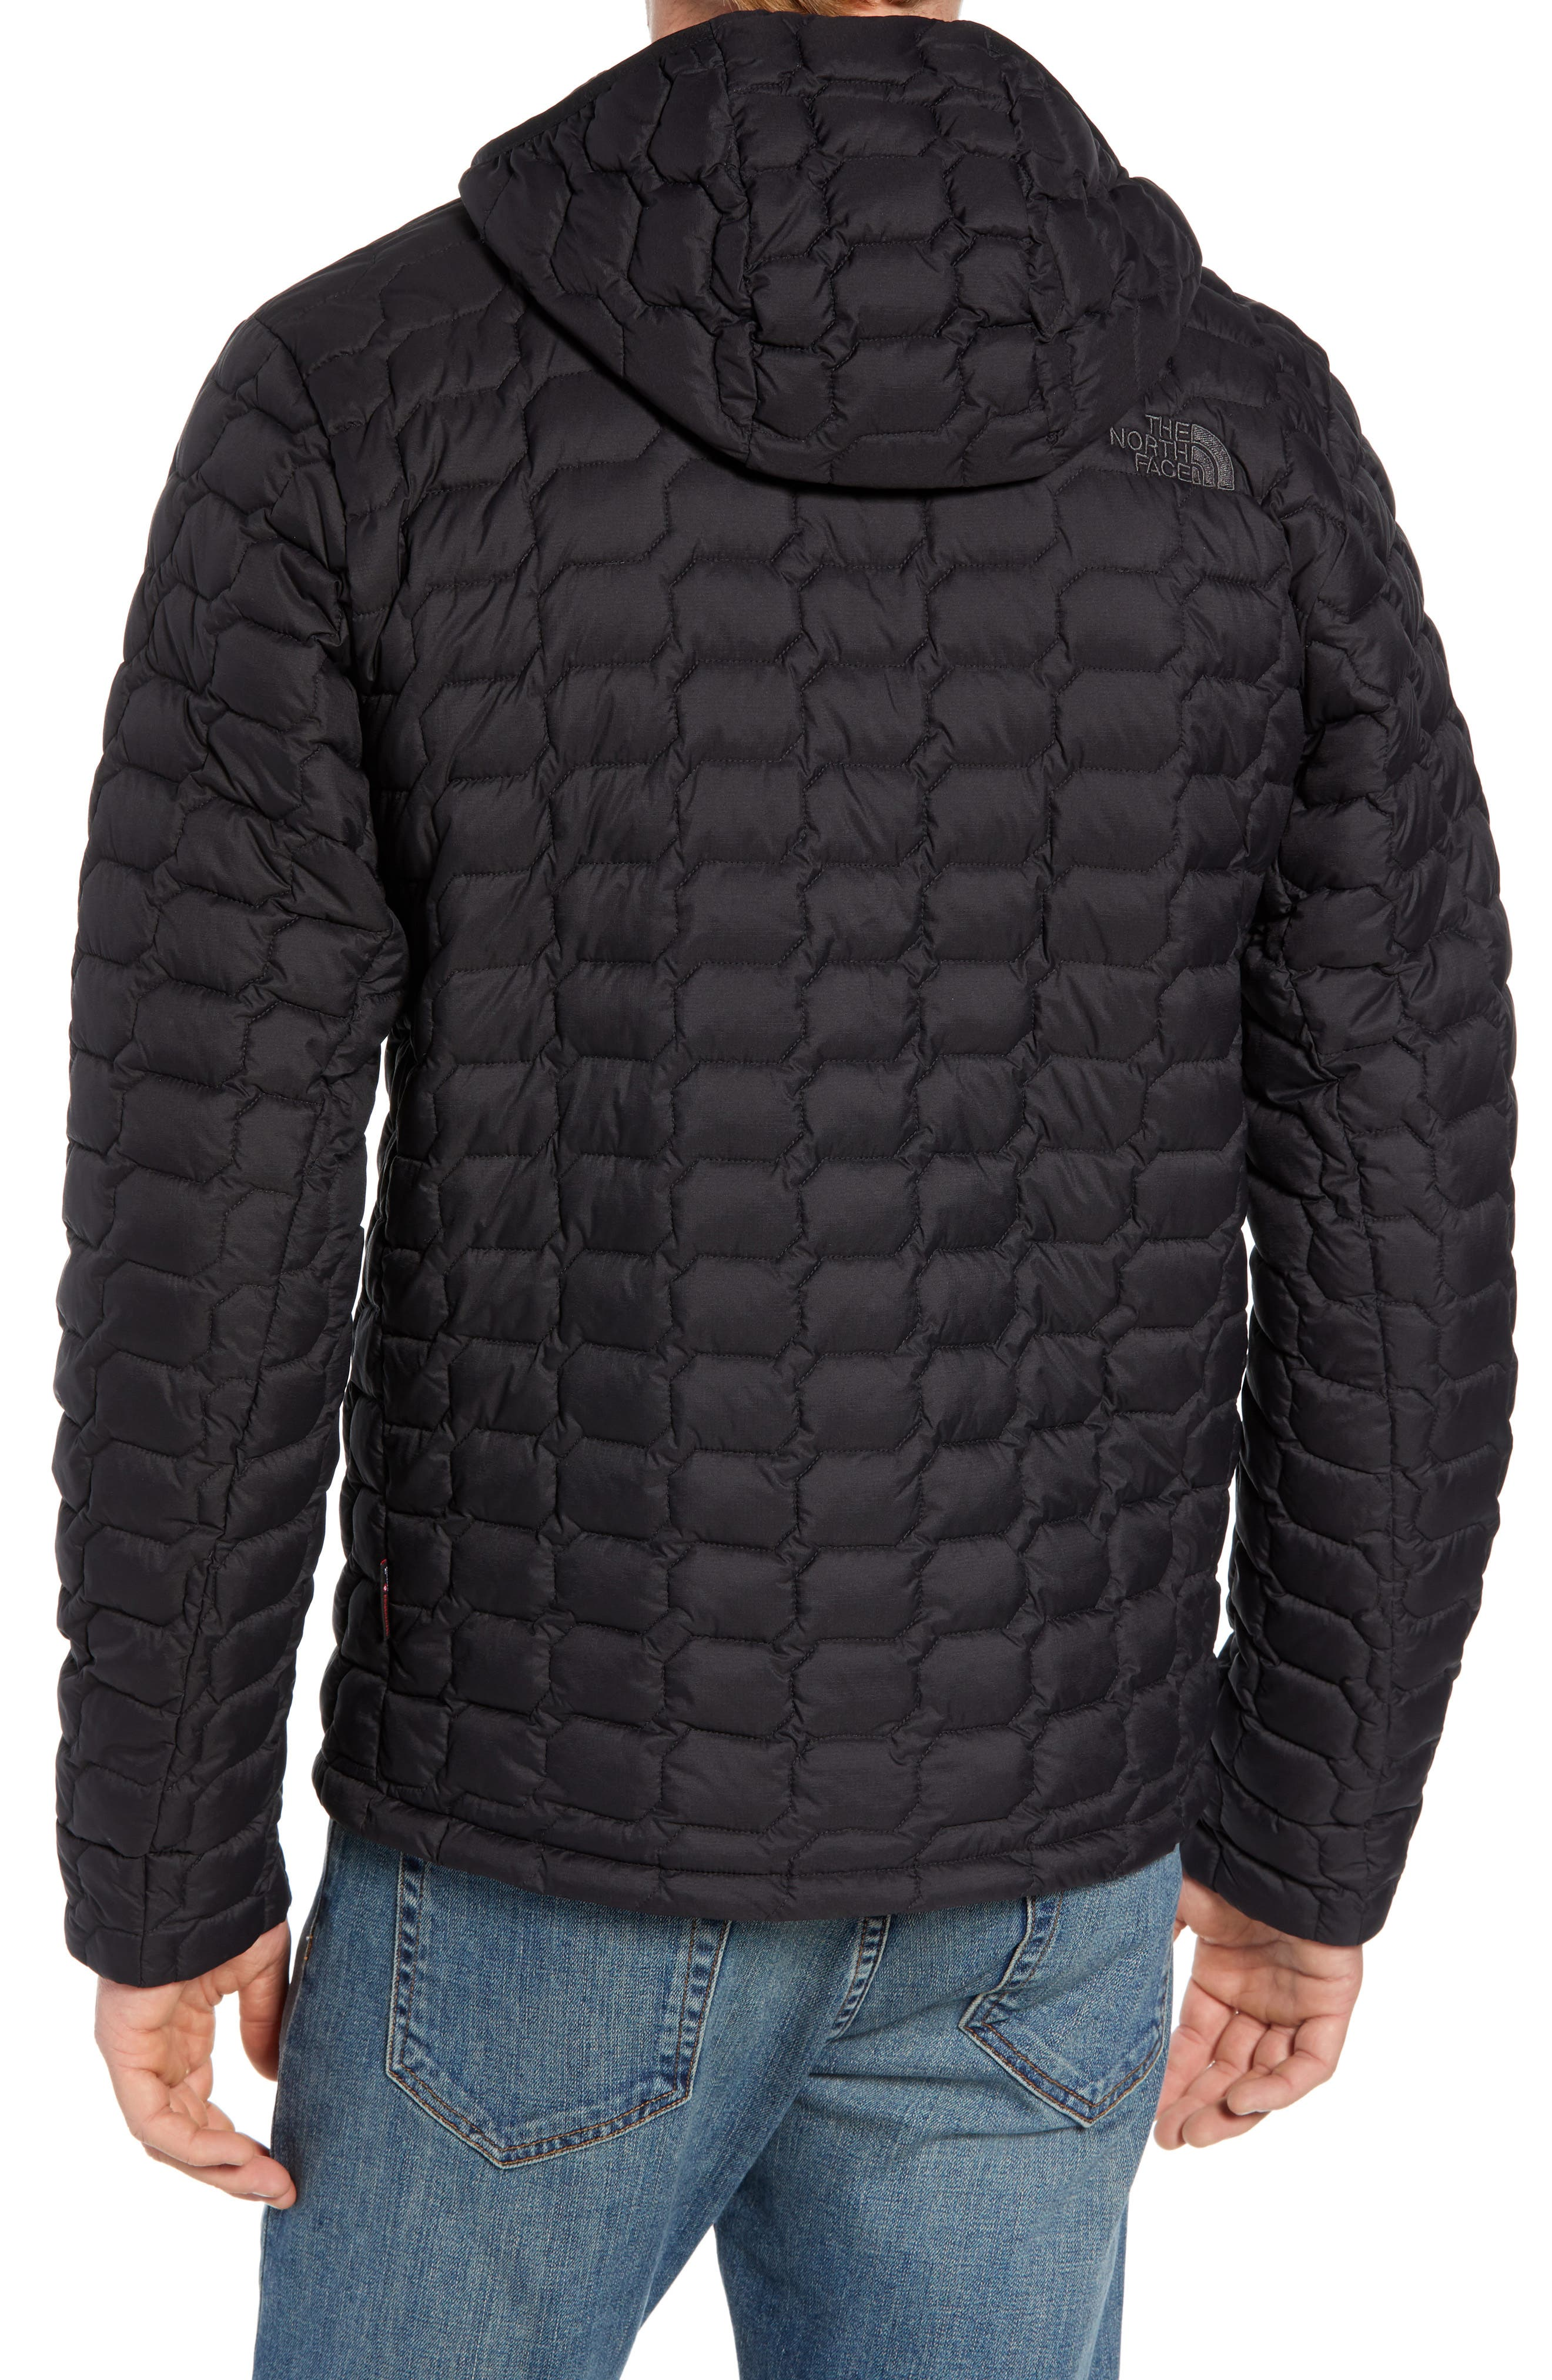 THE NORTH FACE, ThermoBall<sup>™</sup> Zip Hoodie, Alternate thumbnail 2, color, 001